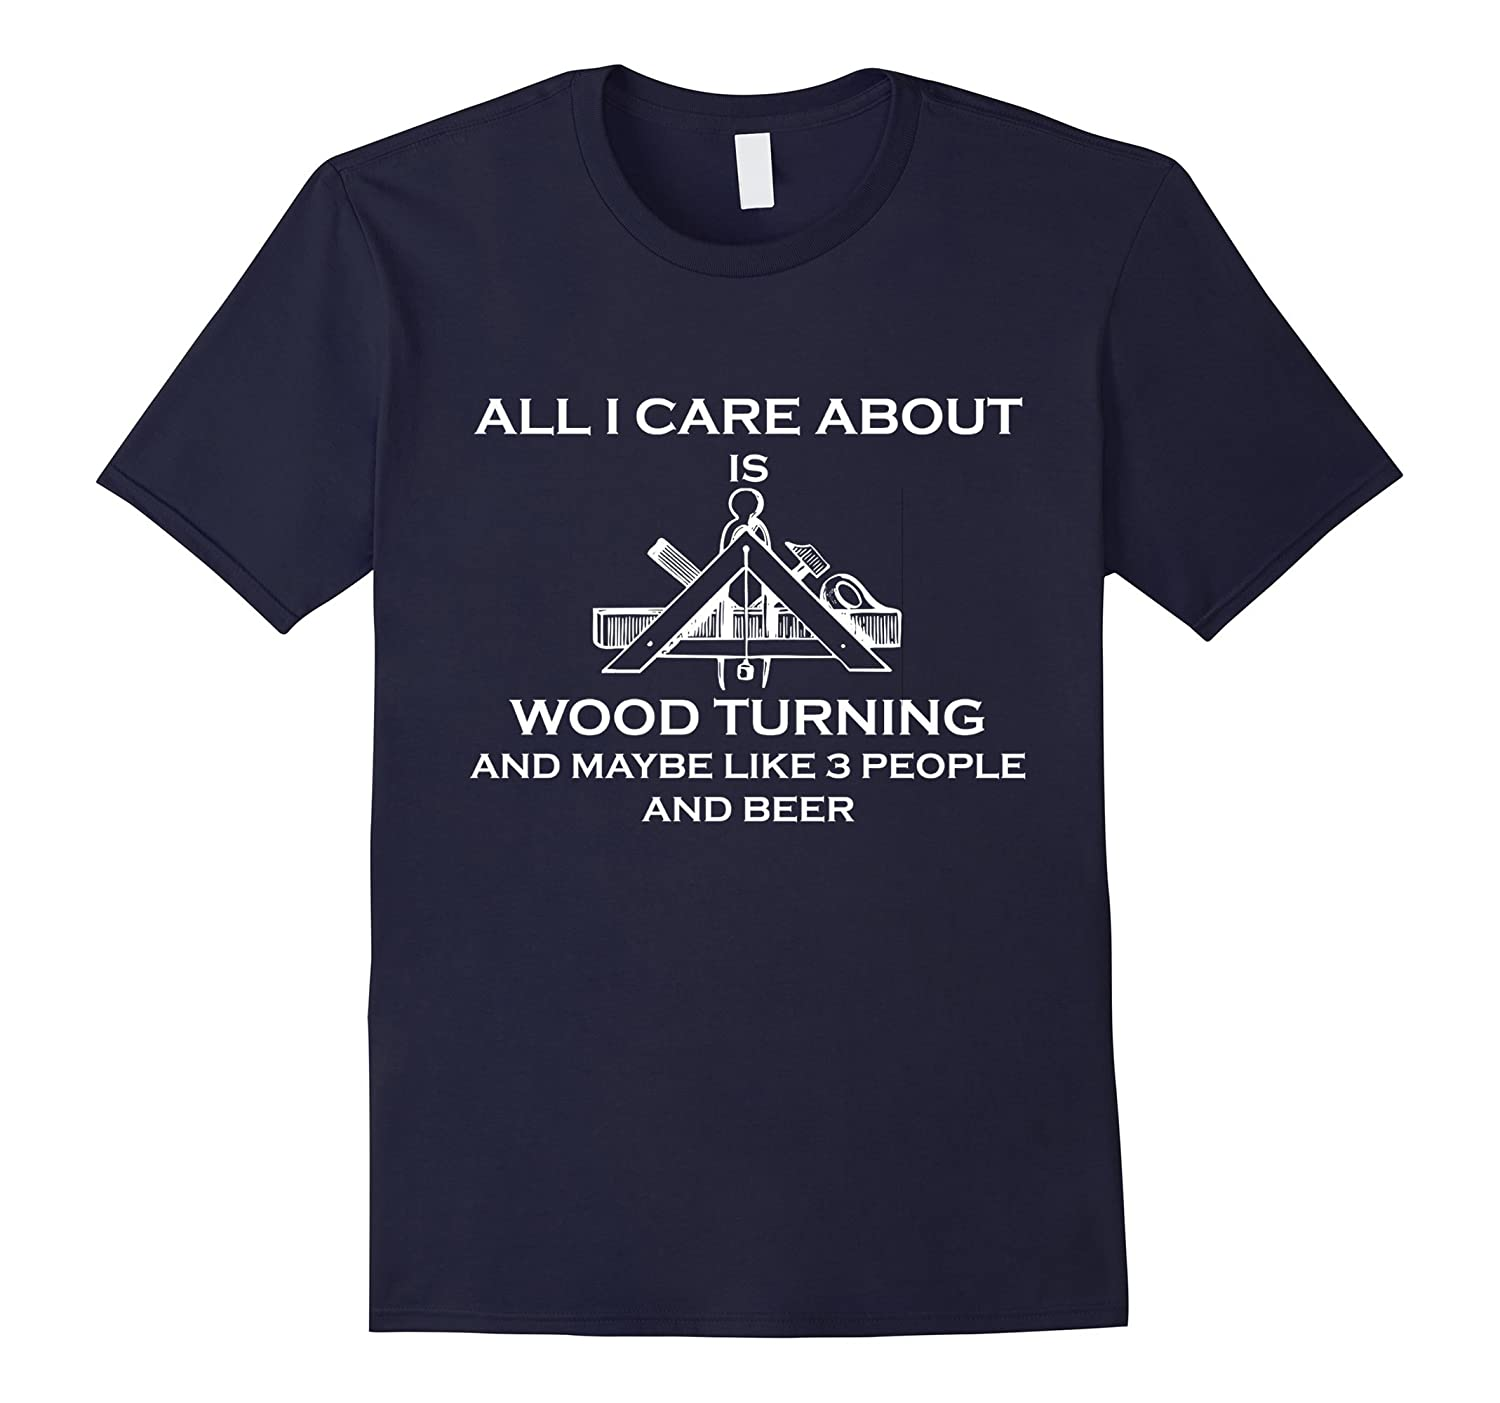 All I Care About is Wood Turning and maybe like 3 people shi-CD